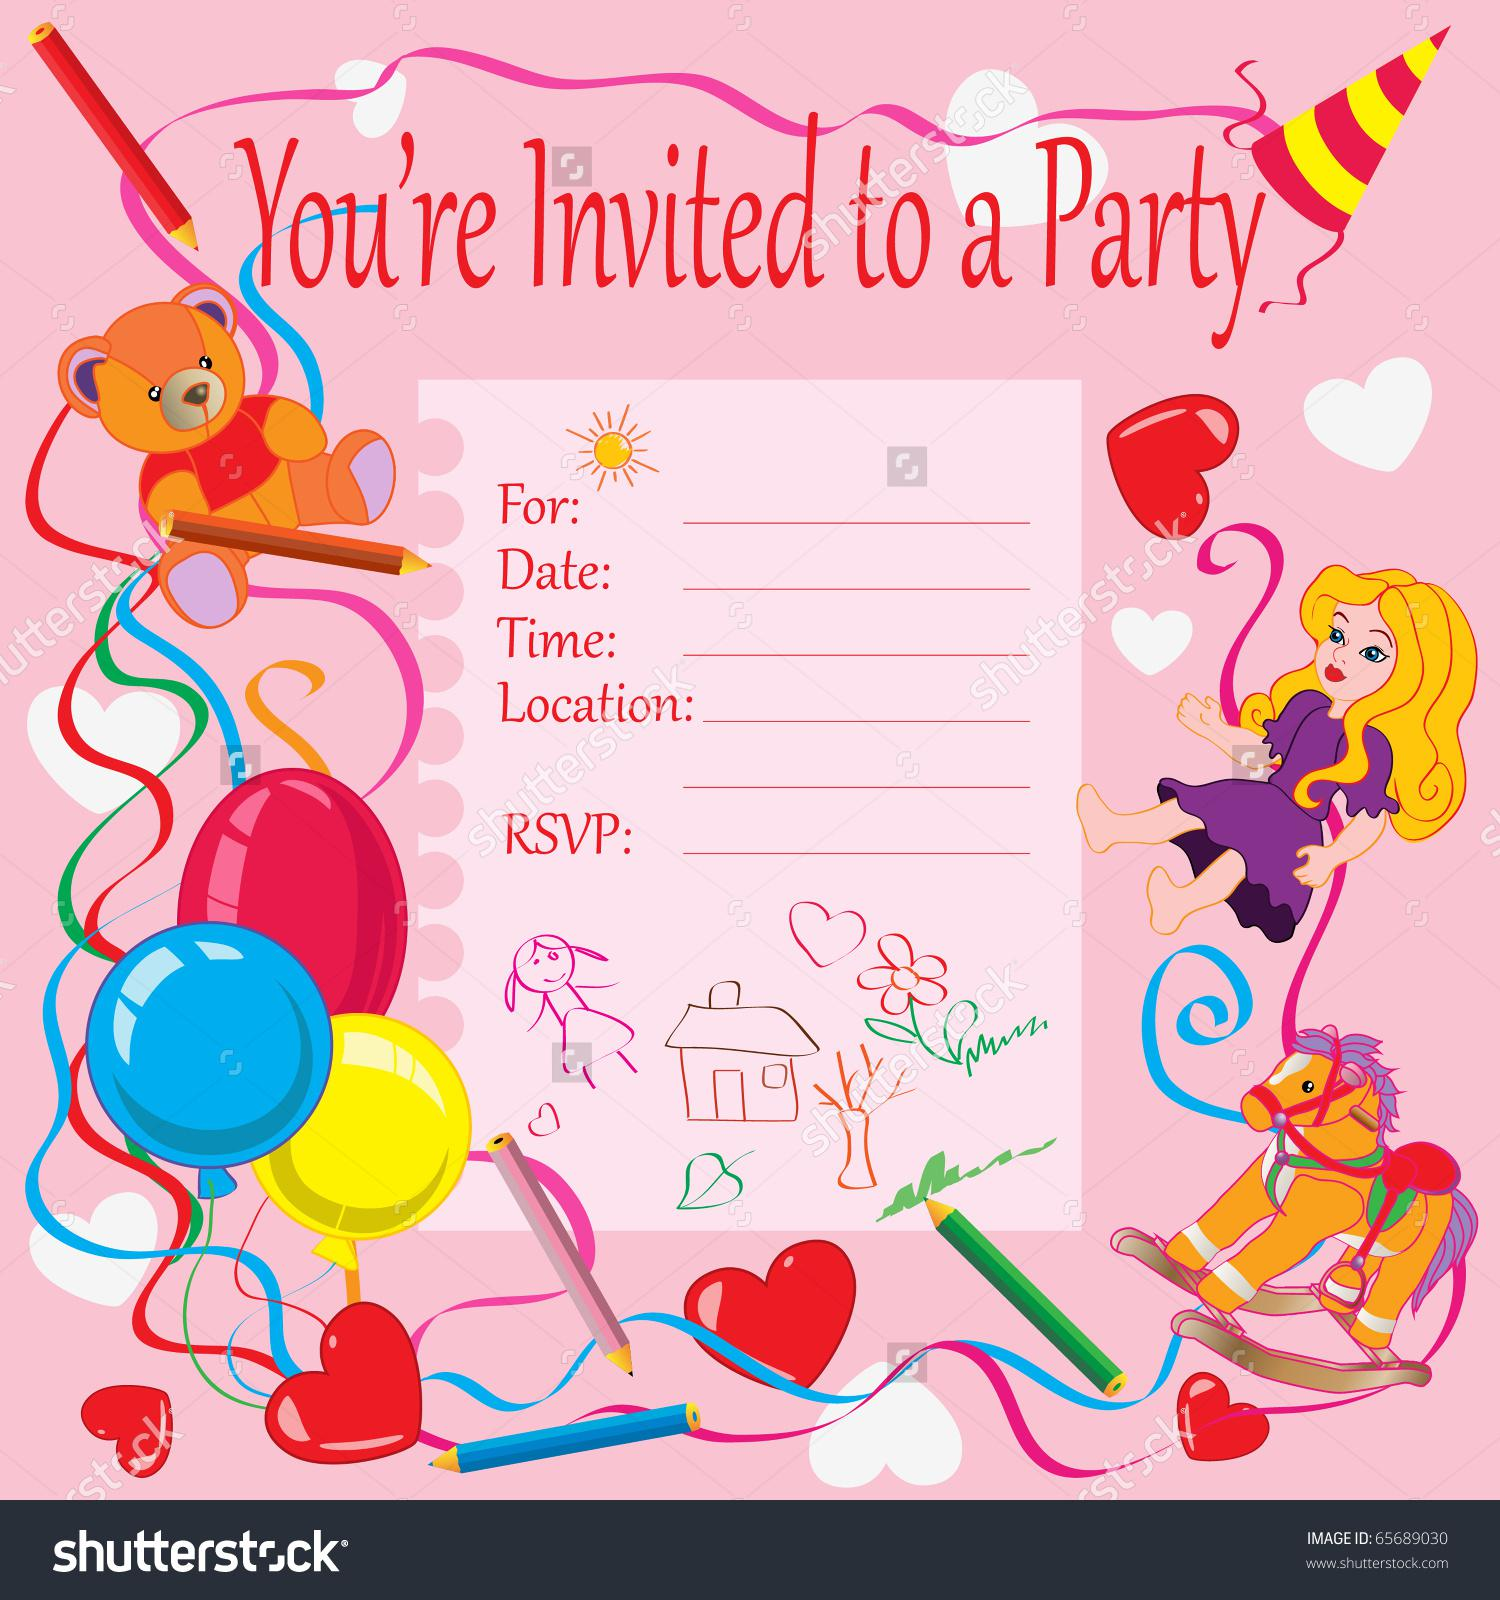 Printable Invitation Card For Birthday Party For Kids  Birthday Party Card Template